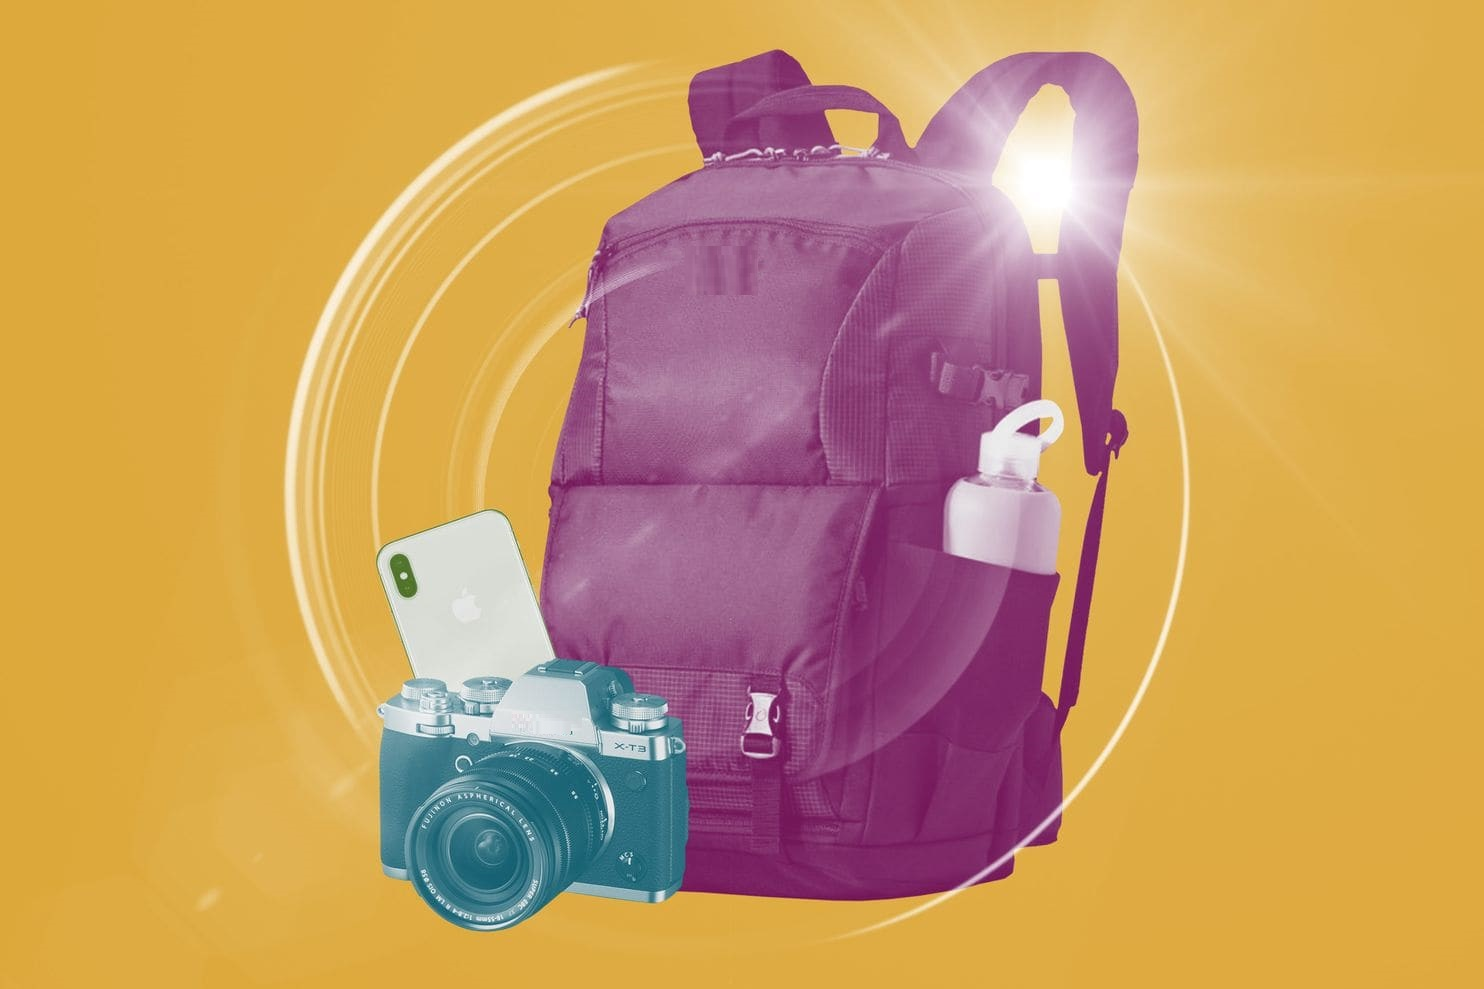 Advantages Of Having Travel Camera For Your Trip